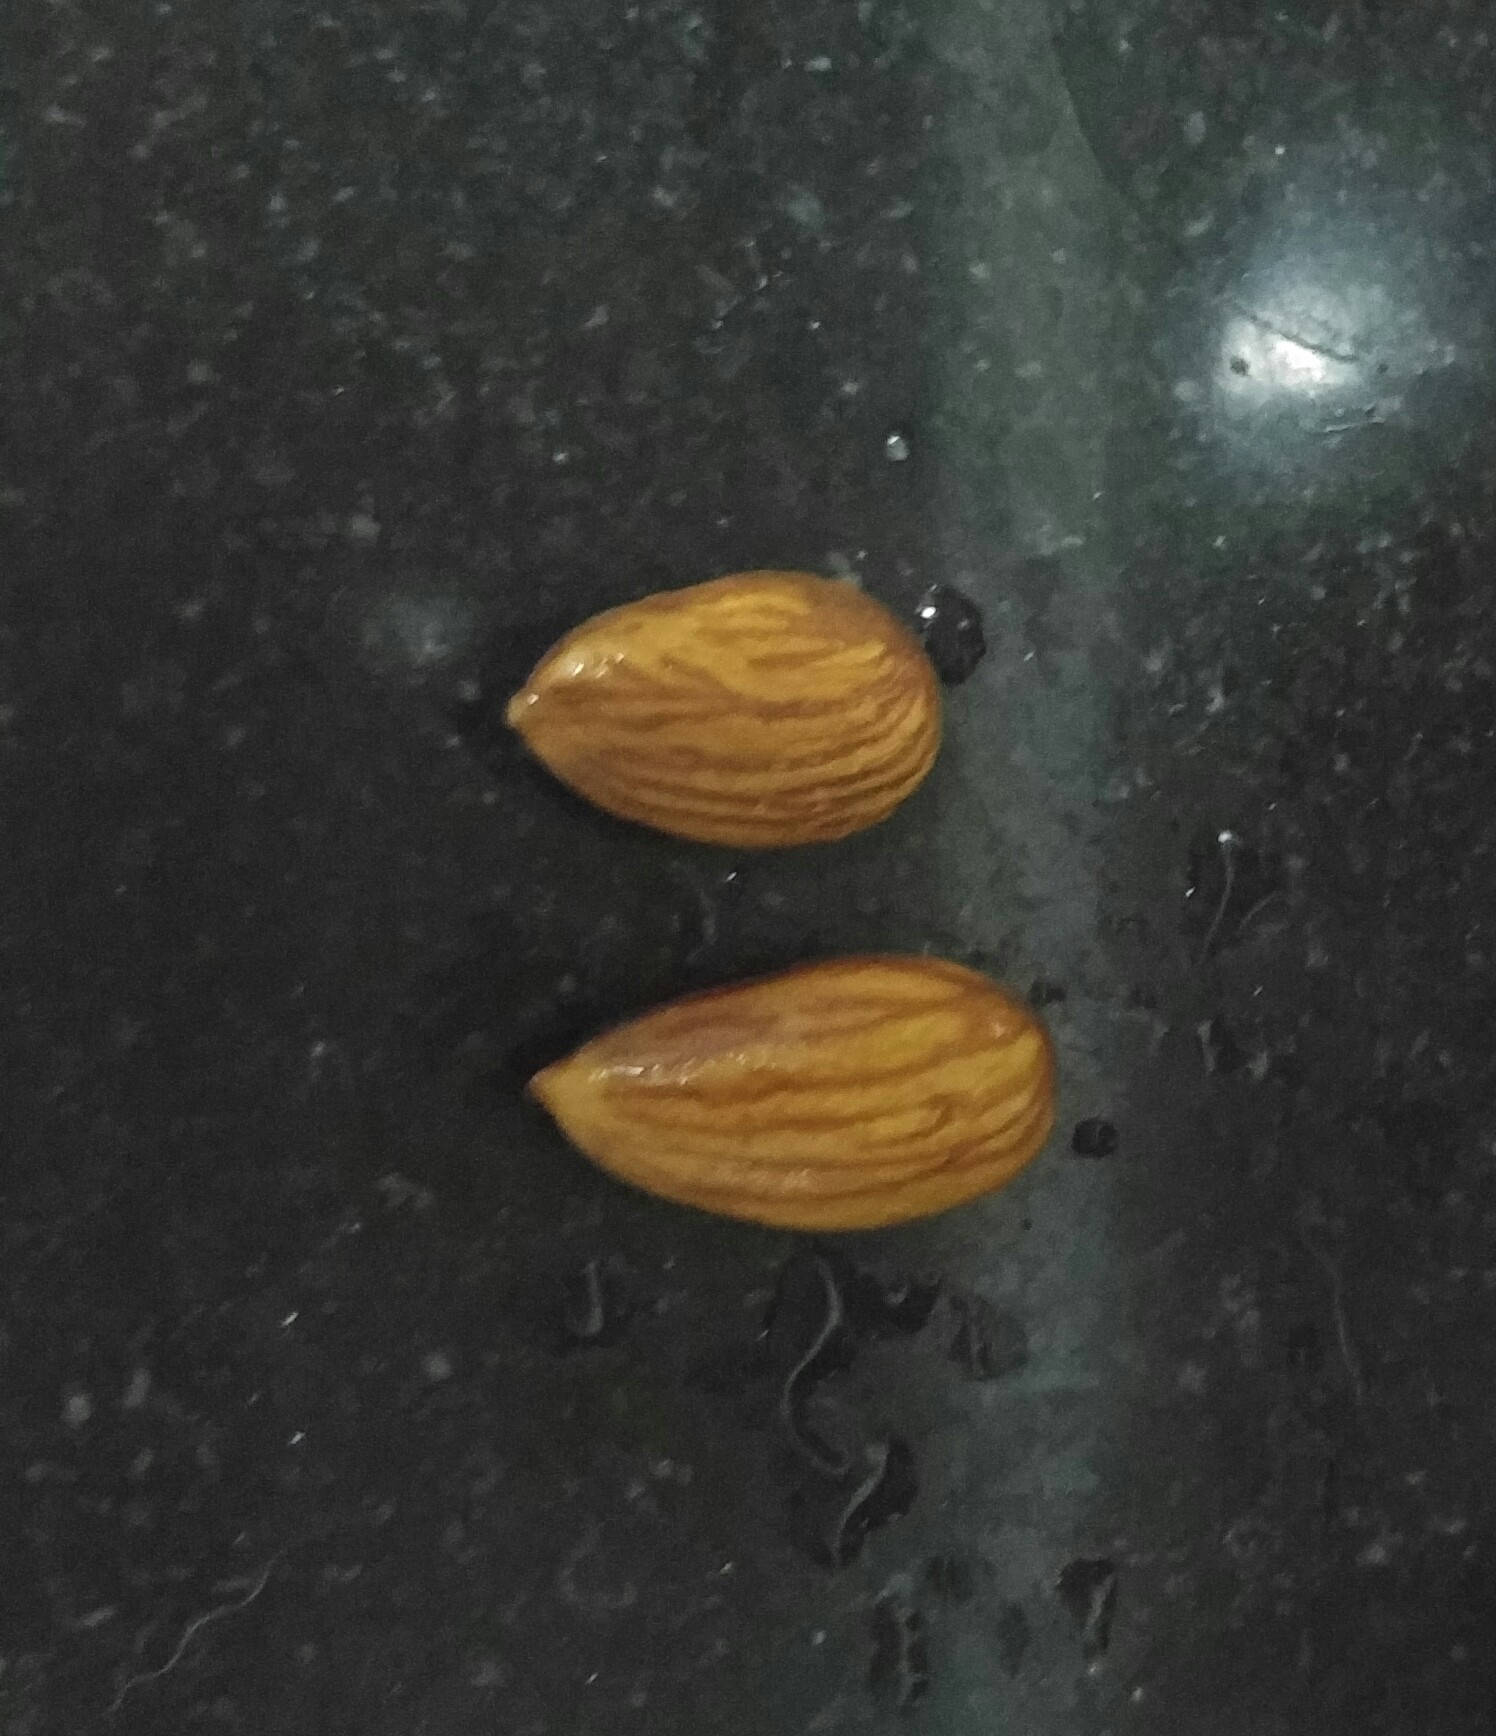 Dry vs soaked almonds